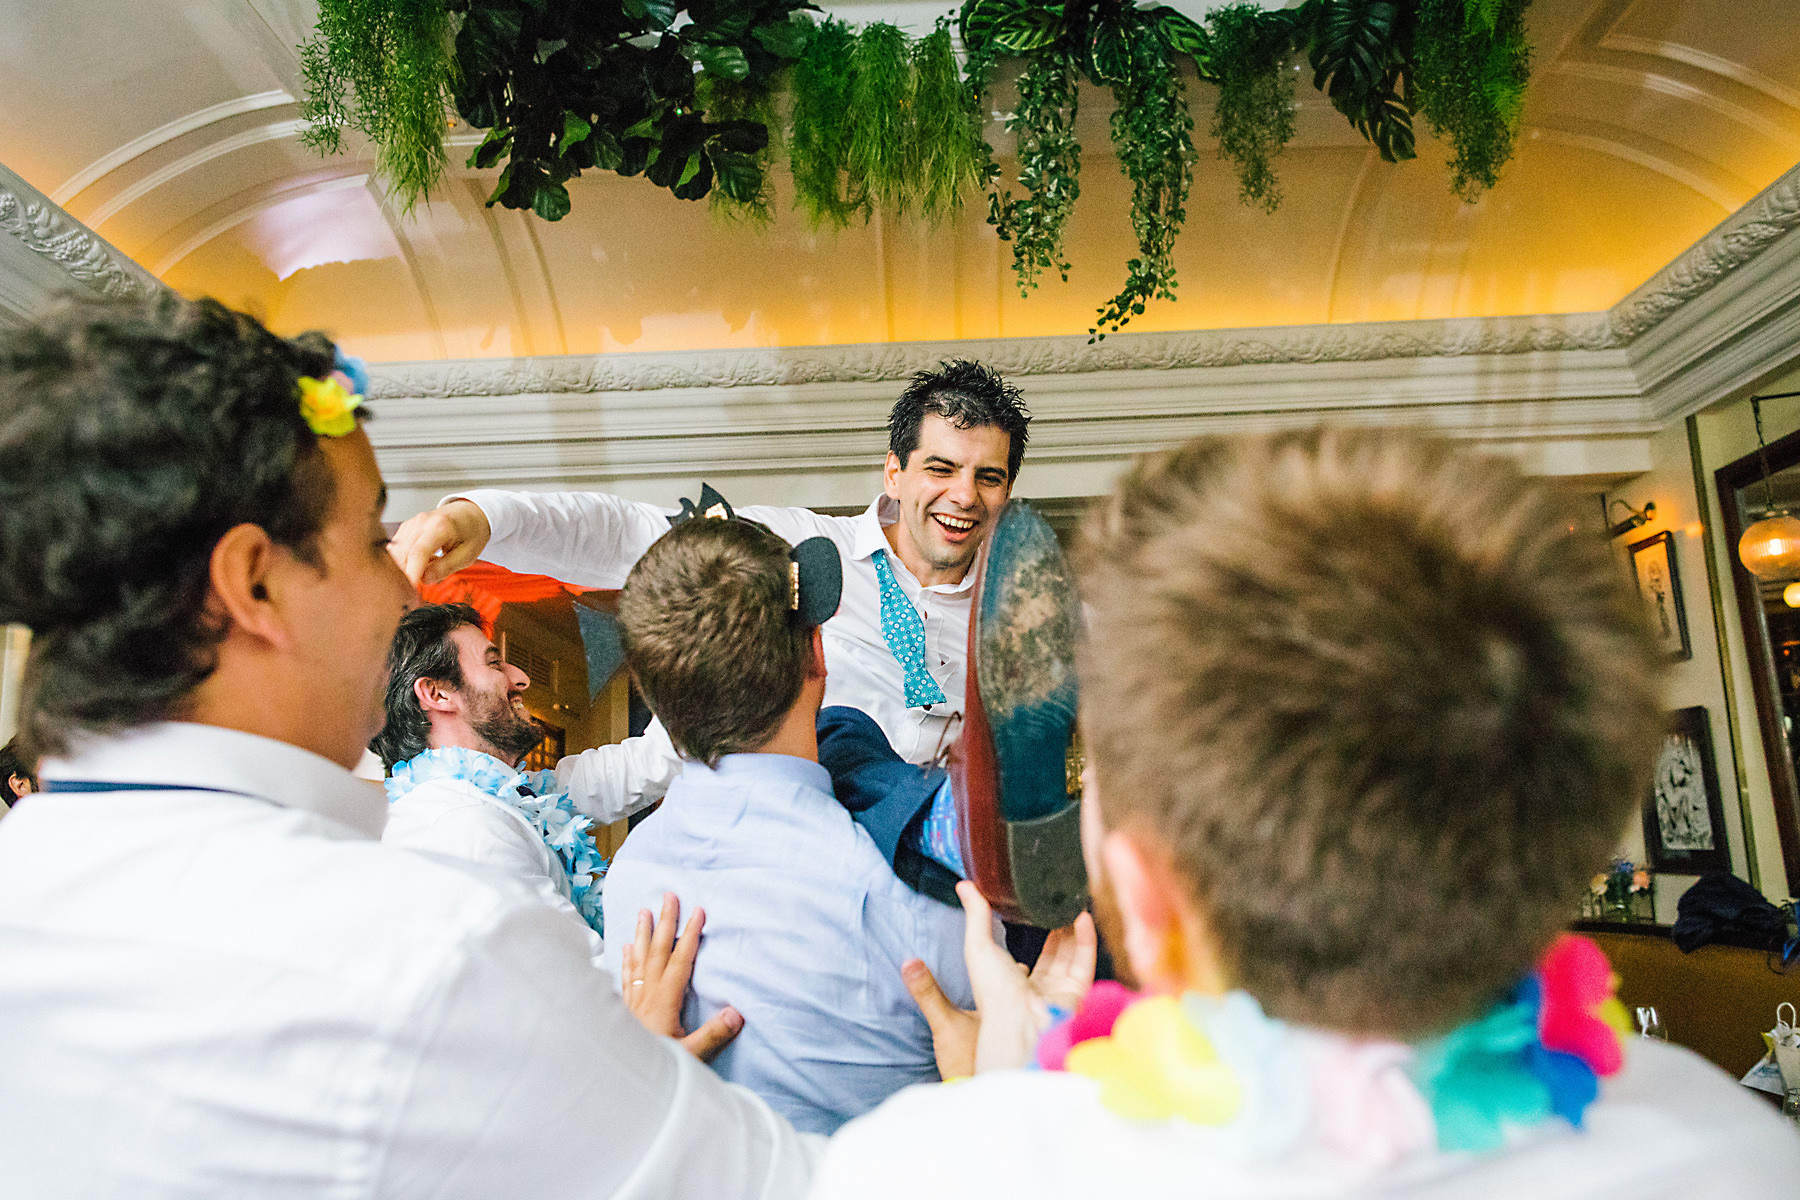 groom thrown in air at wedding